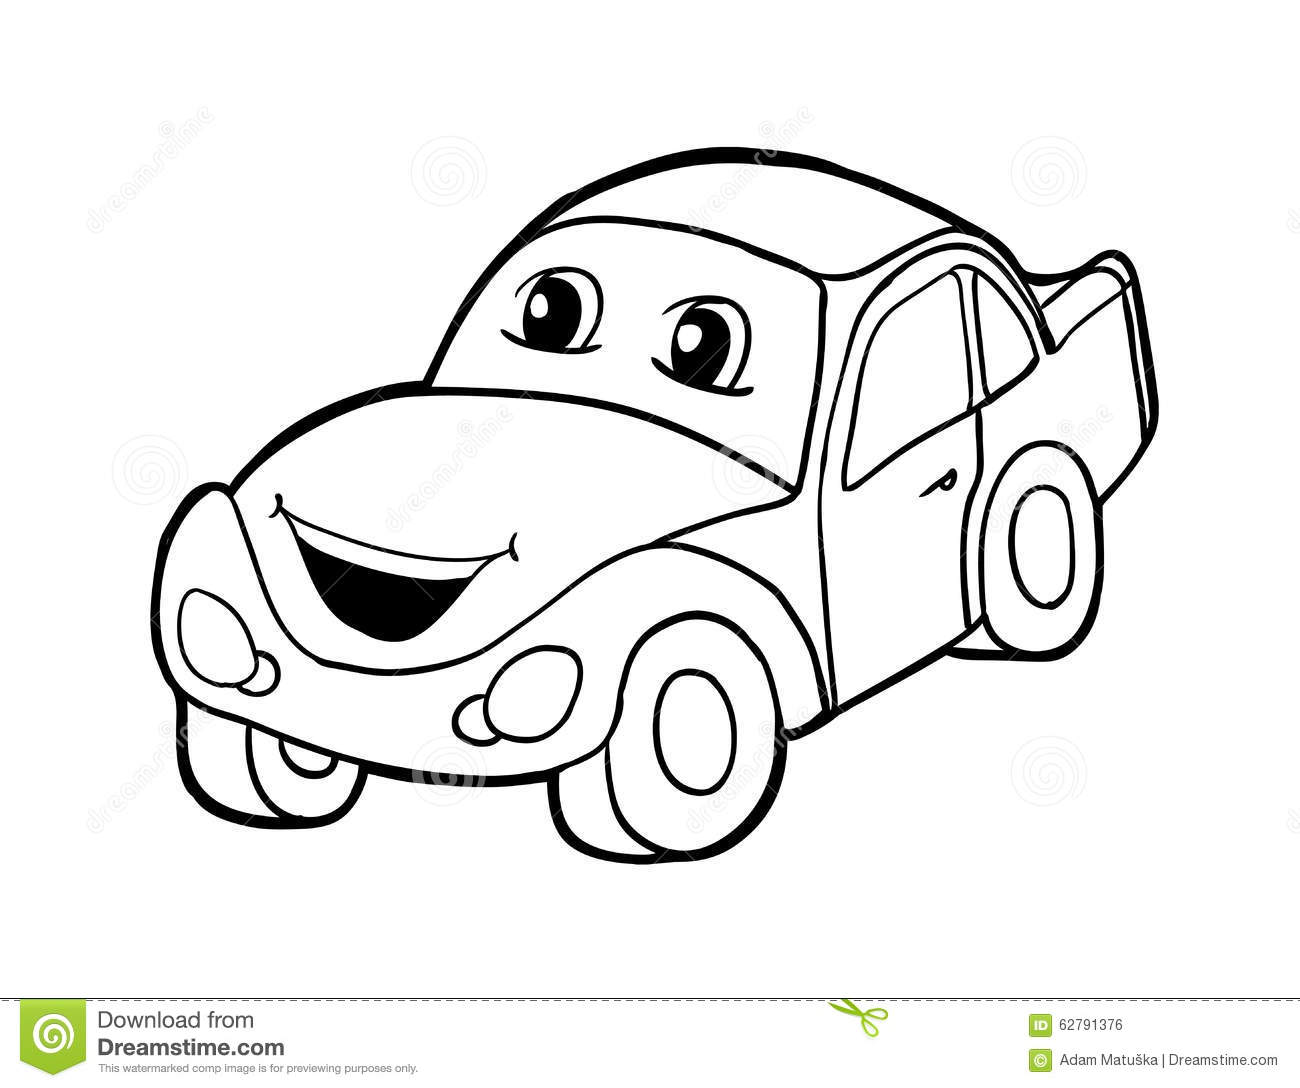 Illustration Stock Voiture Avec Le Sourire Image62791376 on car audio art